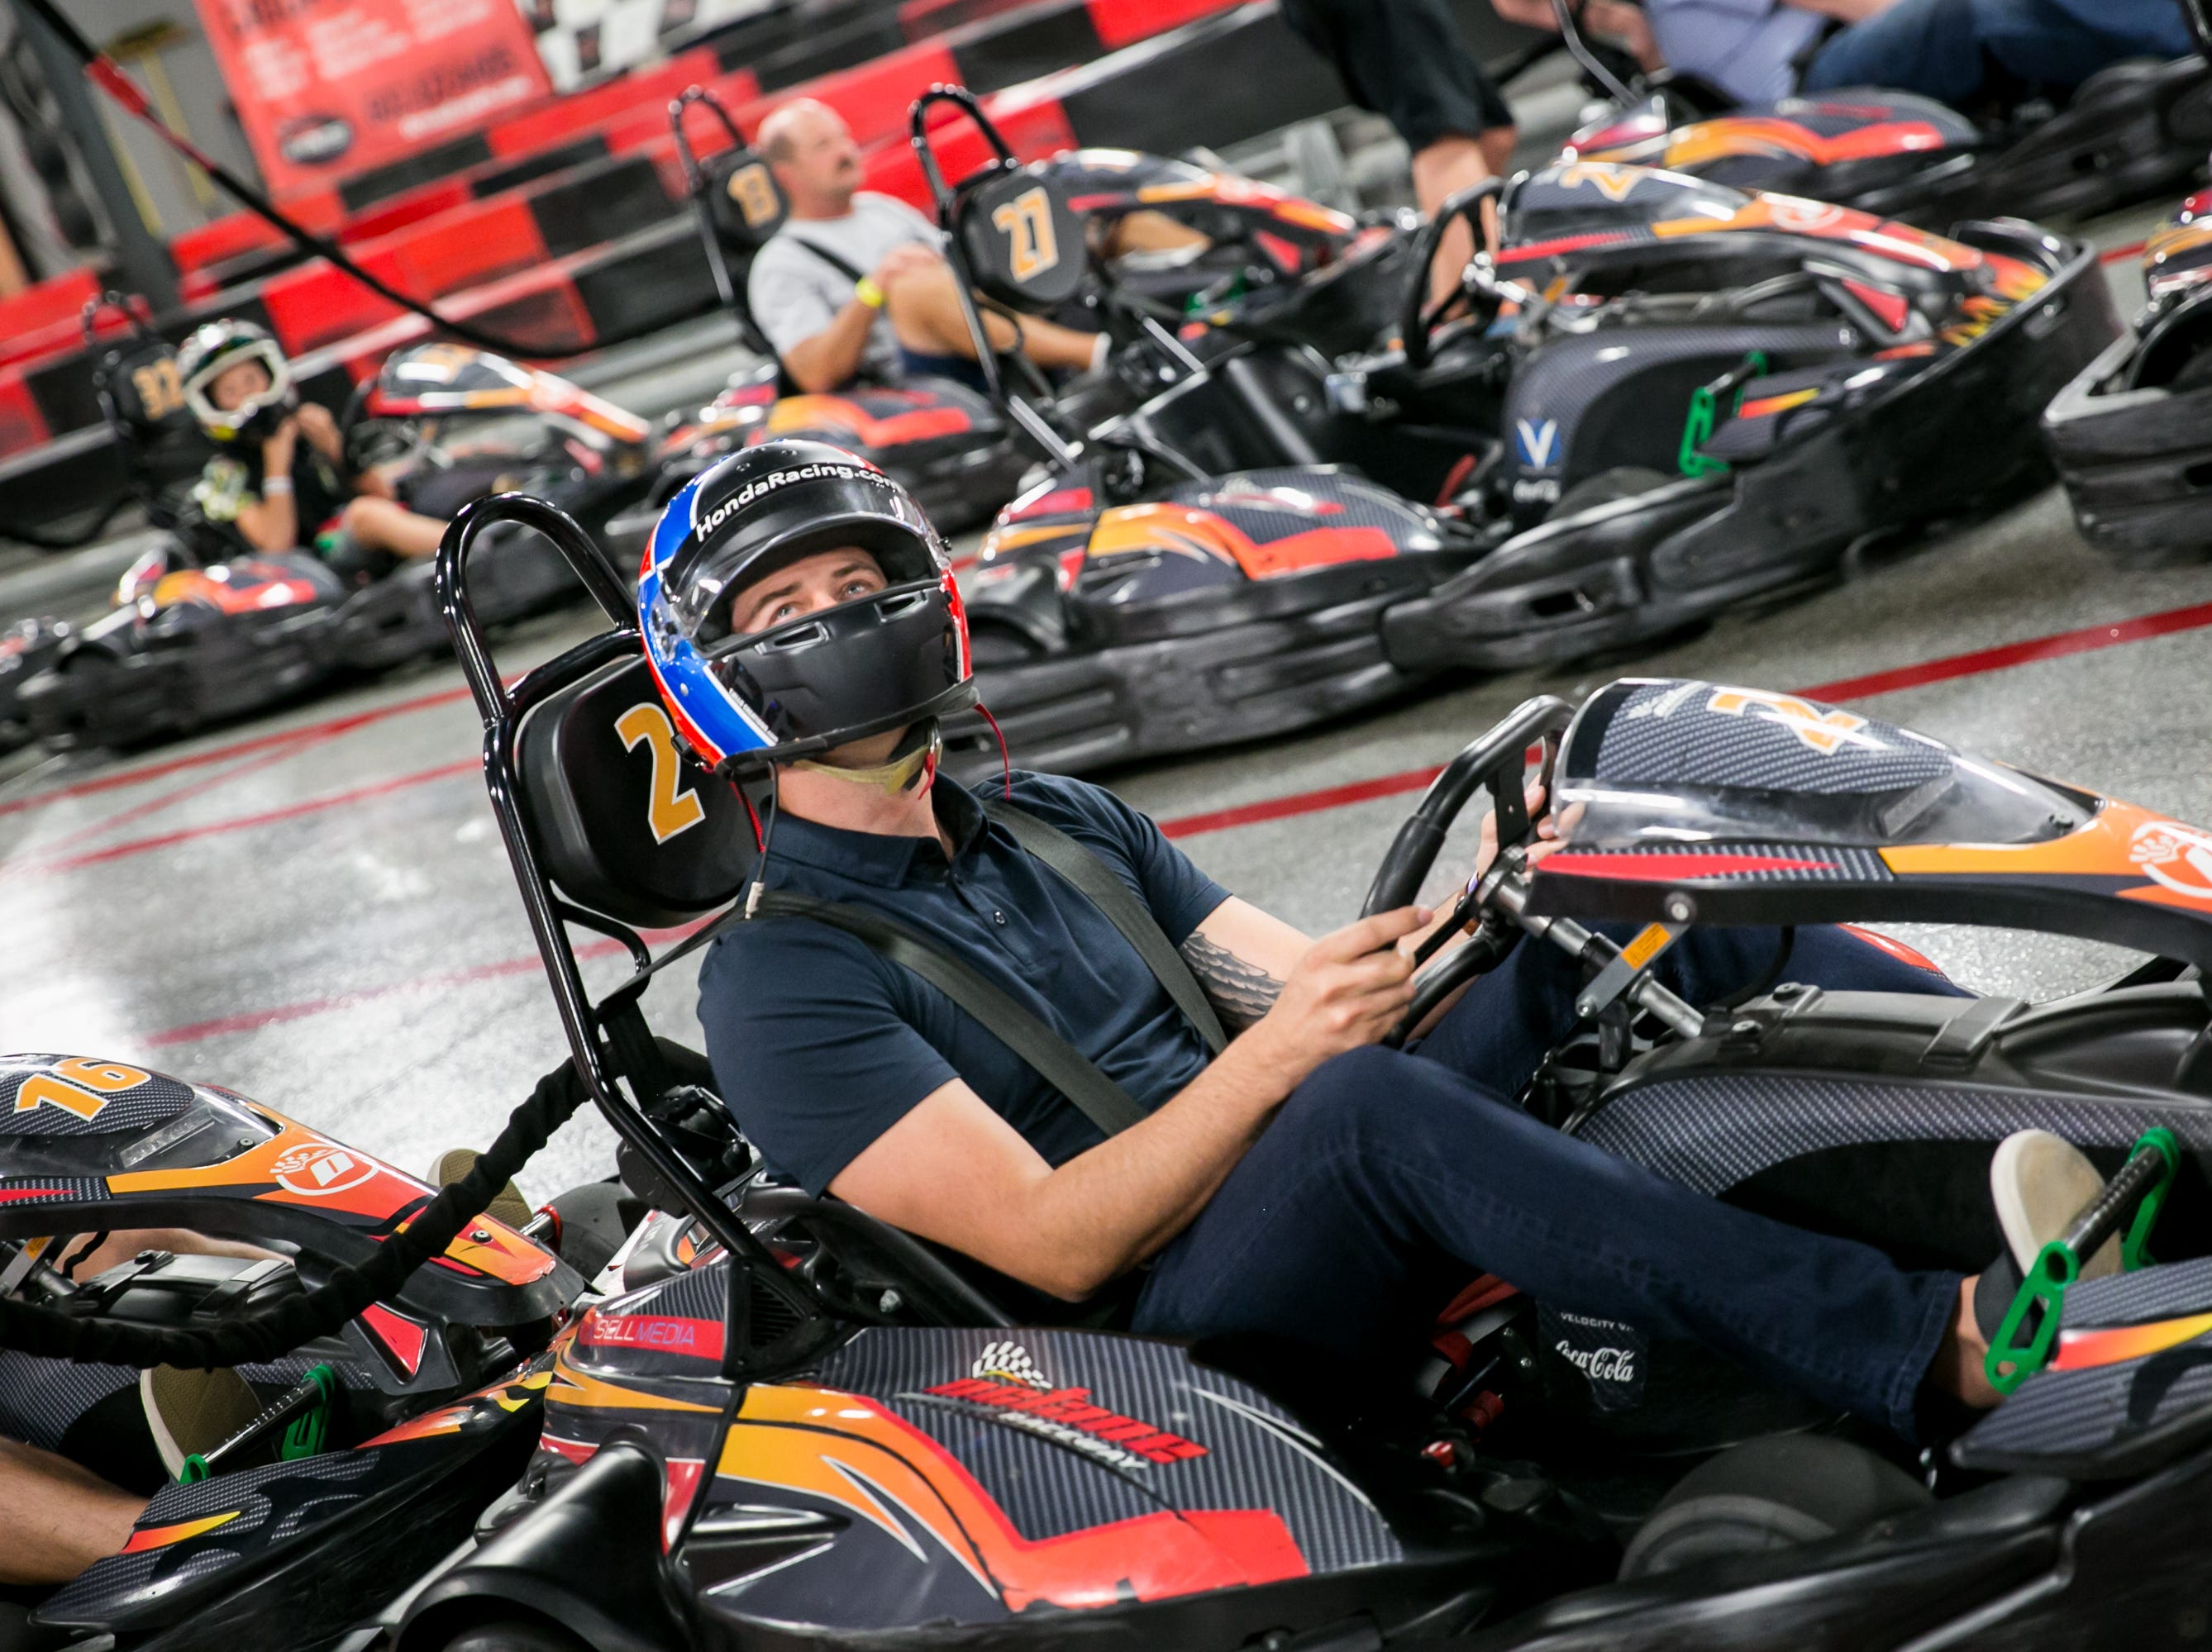 Arie Luyendyk Jr. gets ready to race during Octane Raceway's 15th Anniversary Party in Scottsdale on Saturday, October 6, 2018.